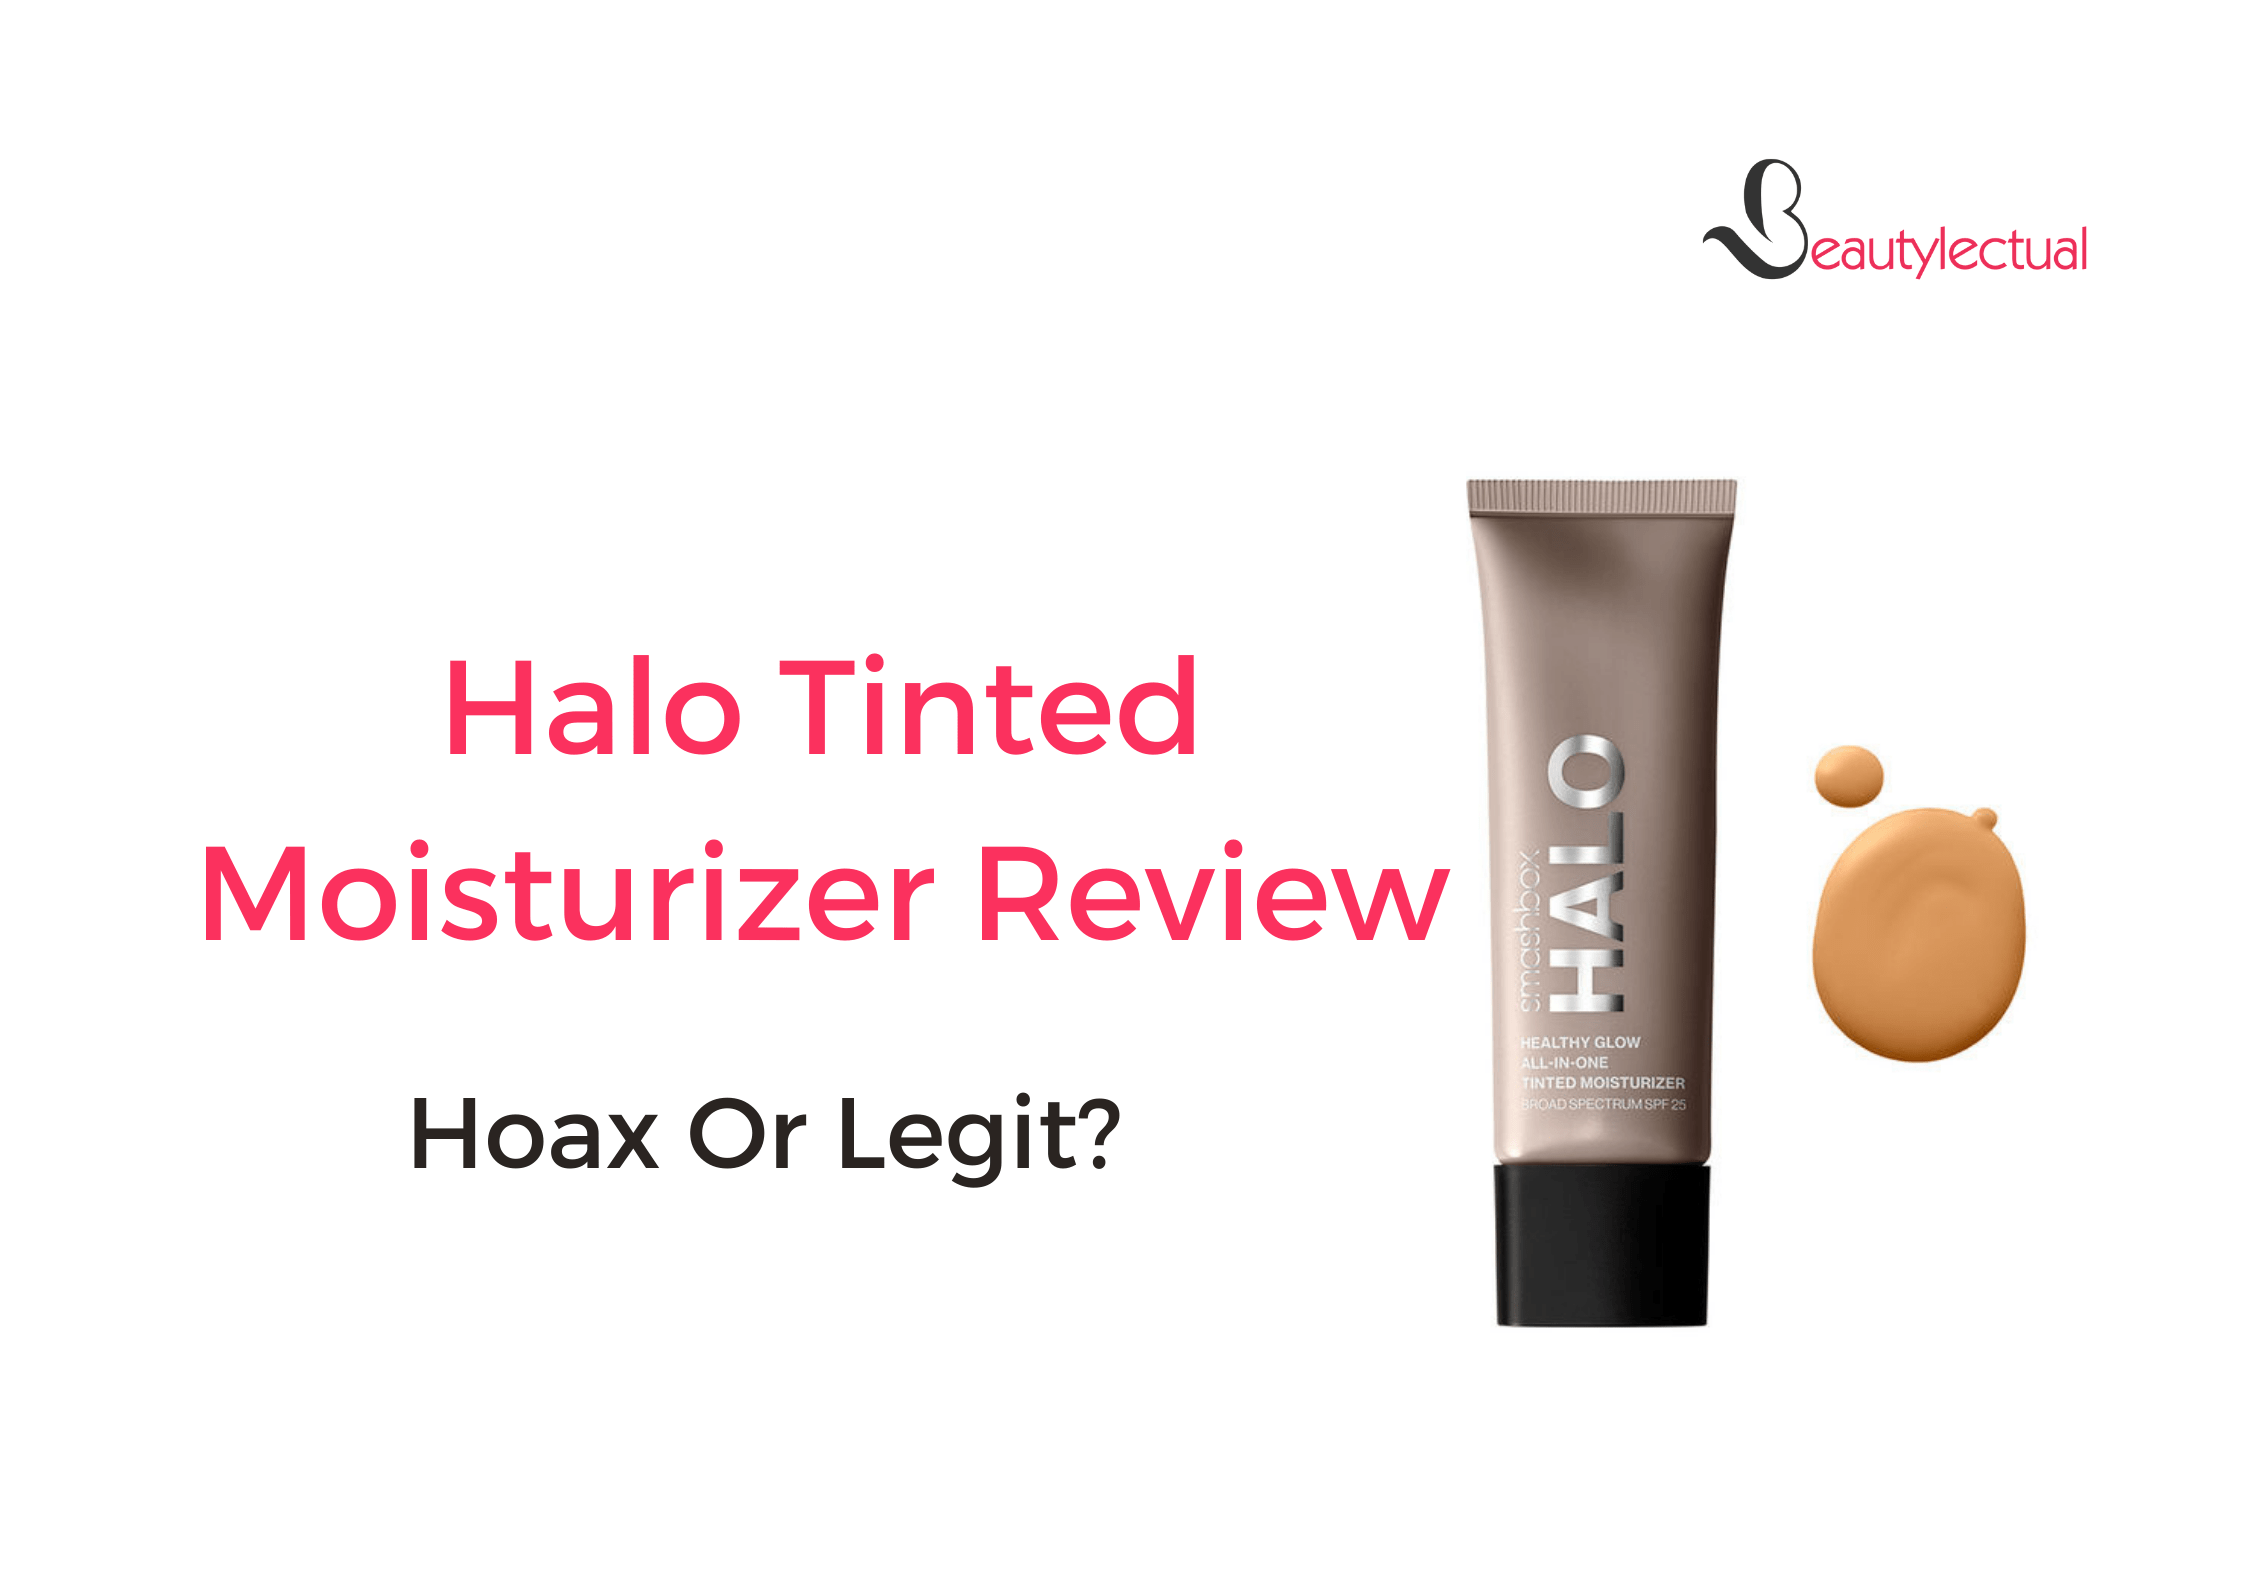 Halo Tinted Moisturizer Review